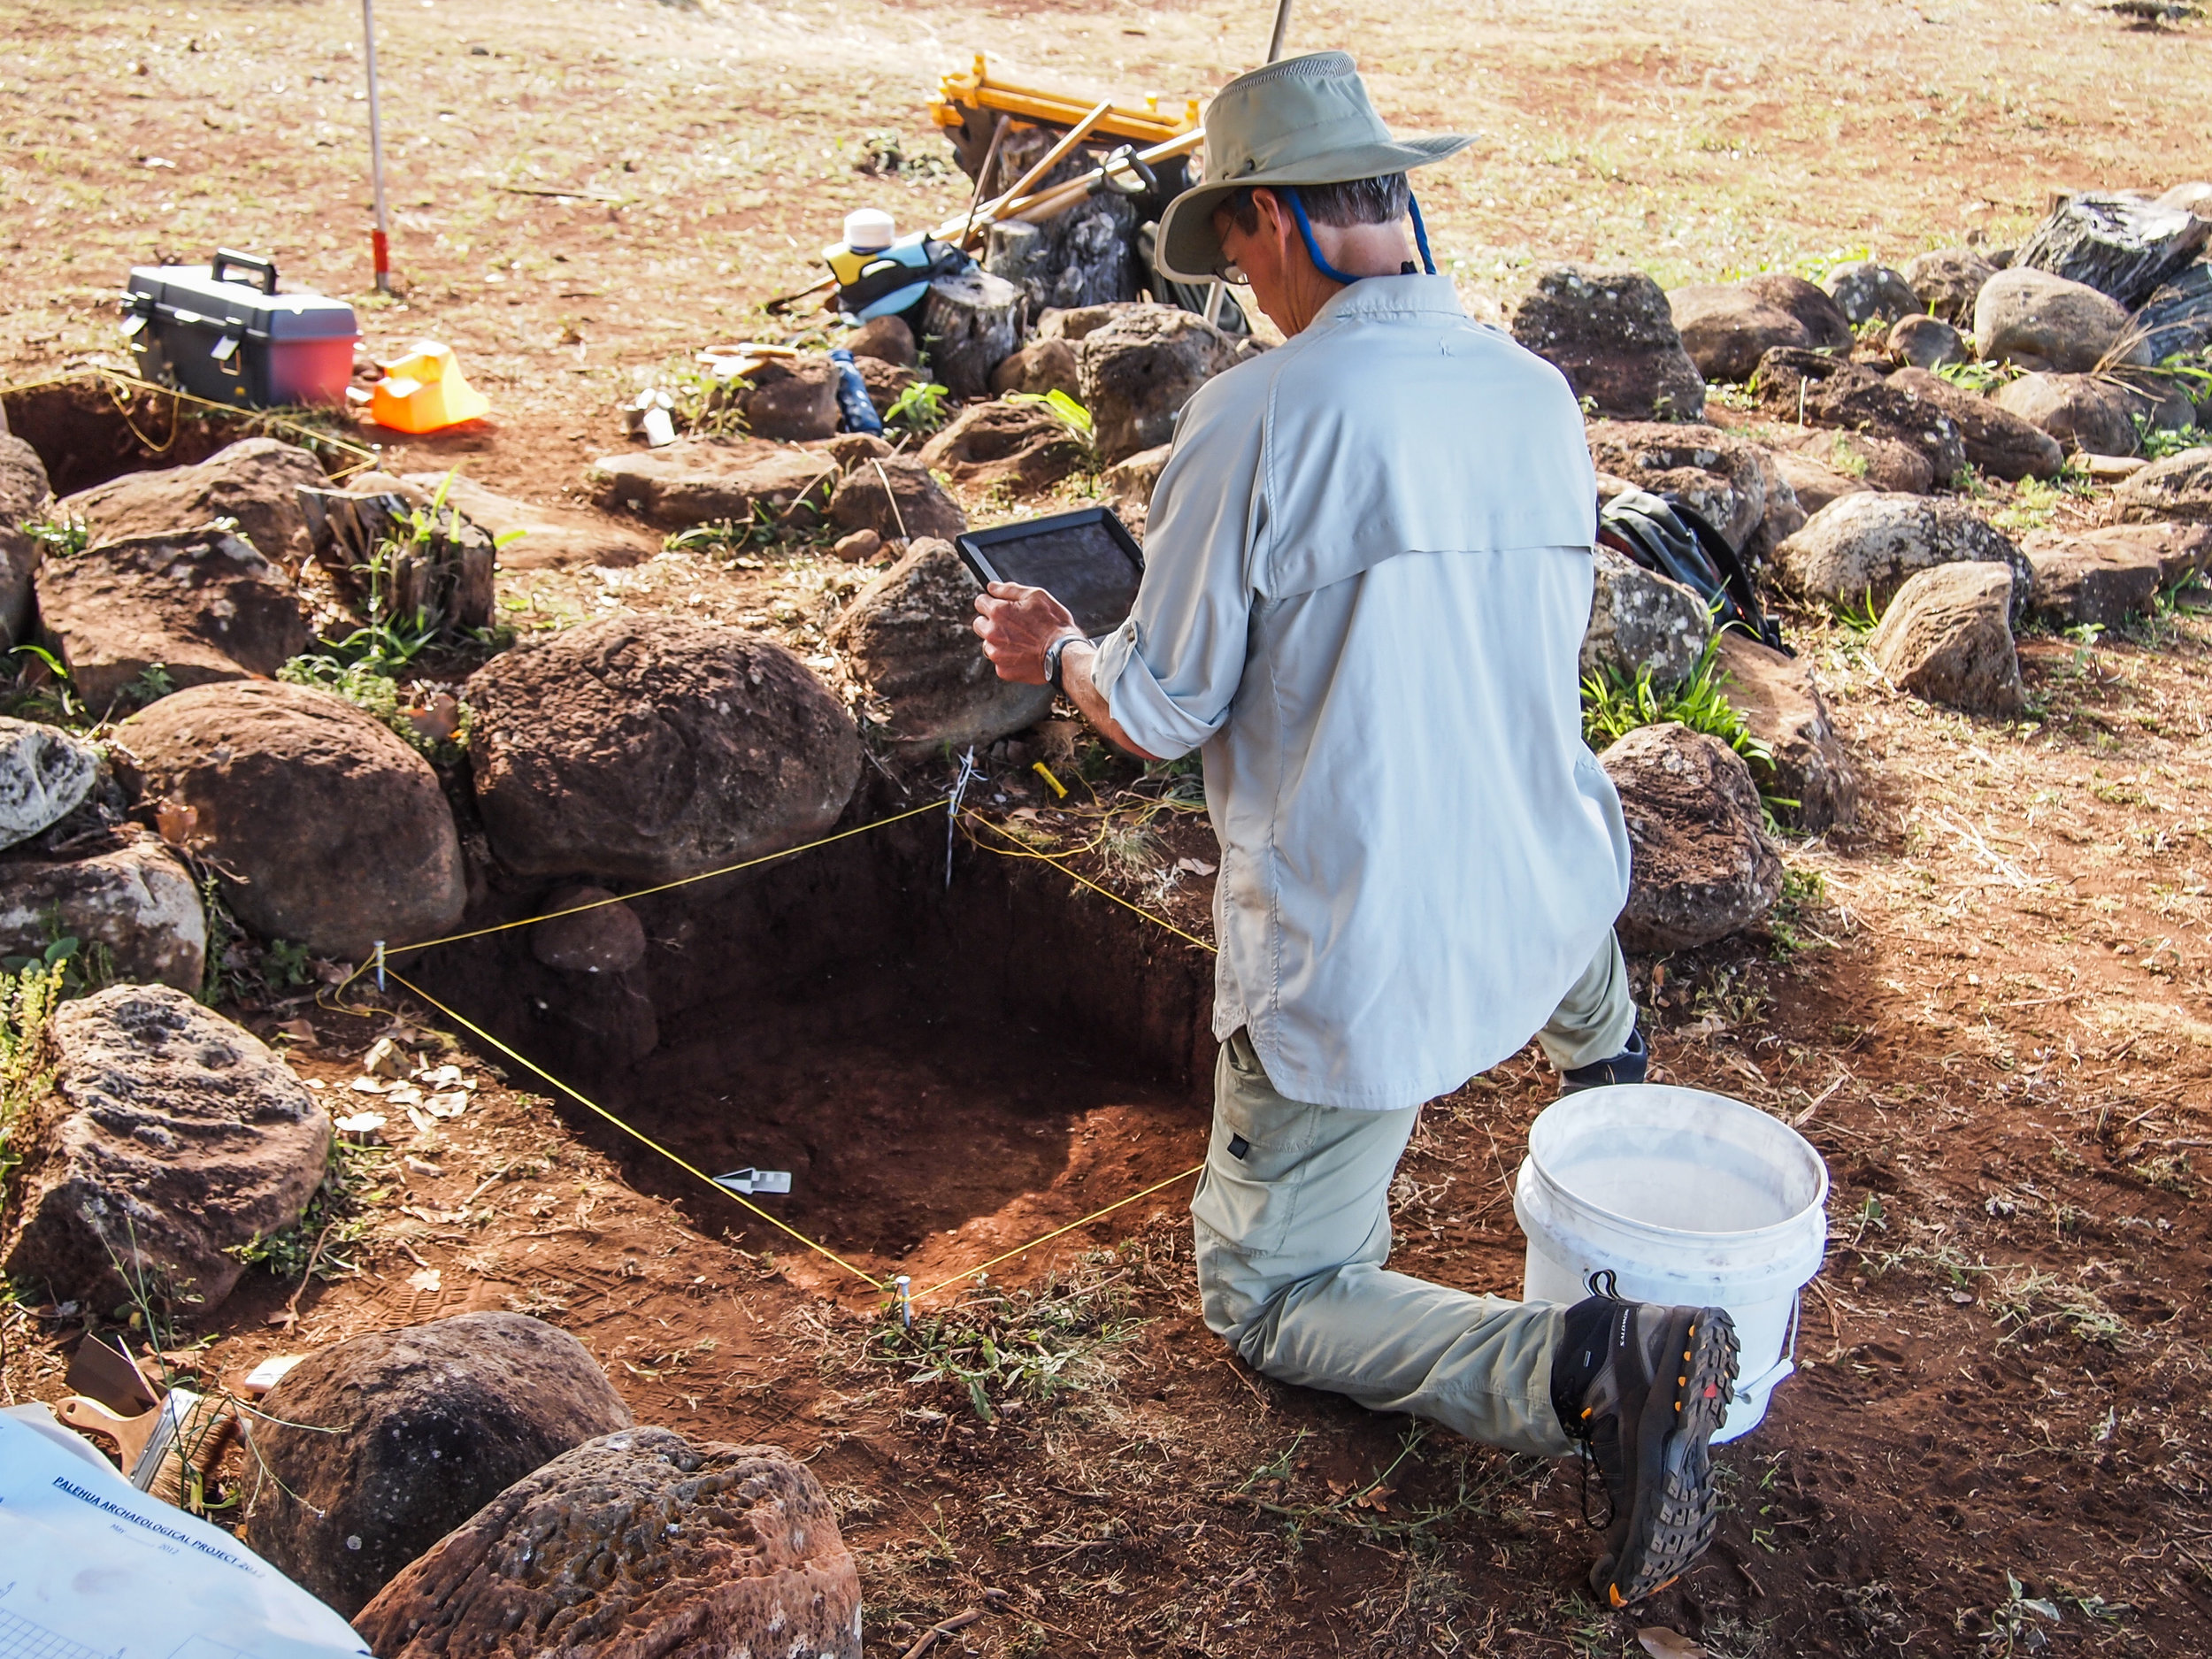 Tim Gill conducting digital documentation for one of the excavated areas